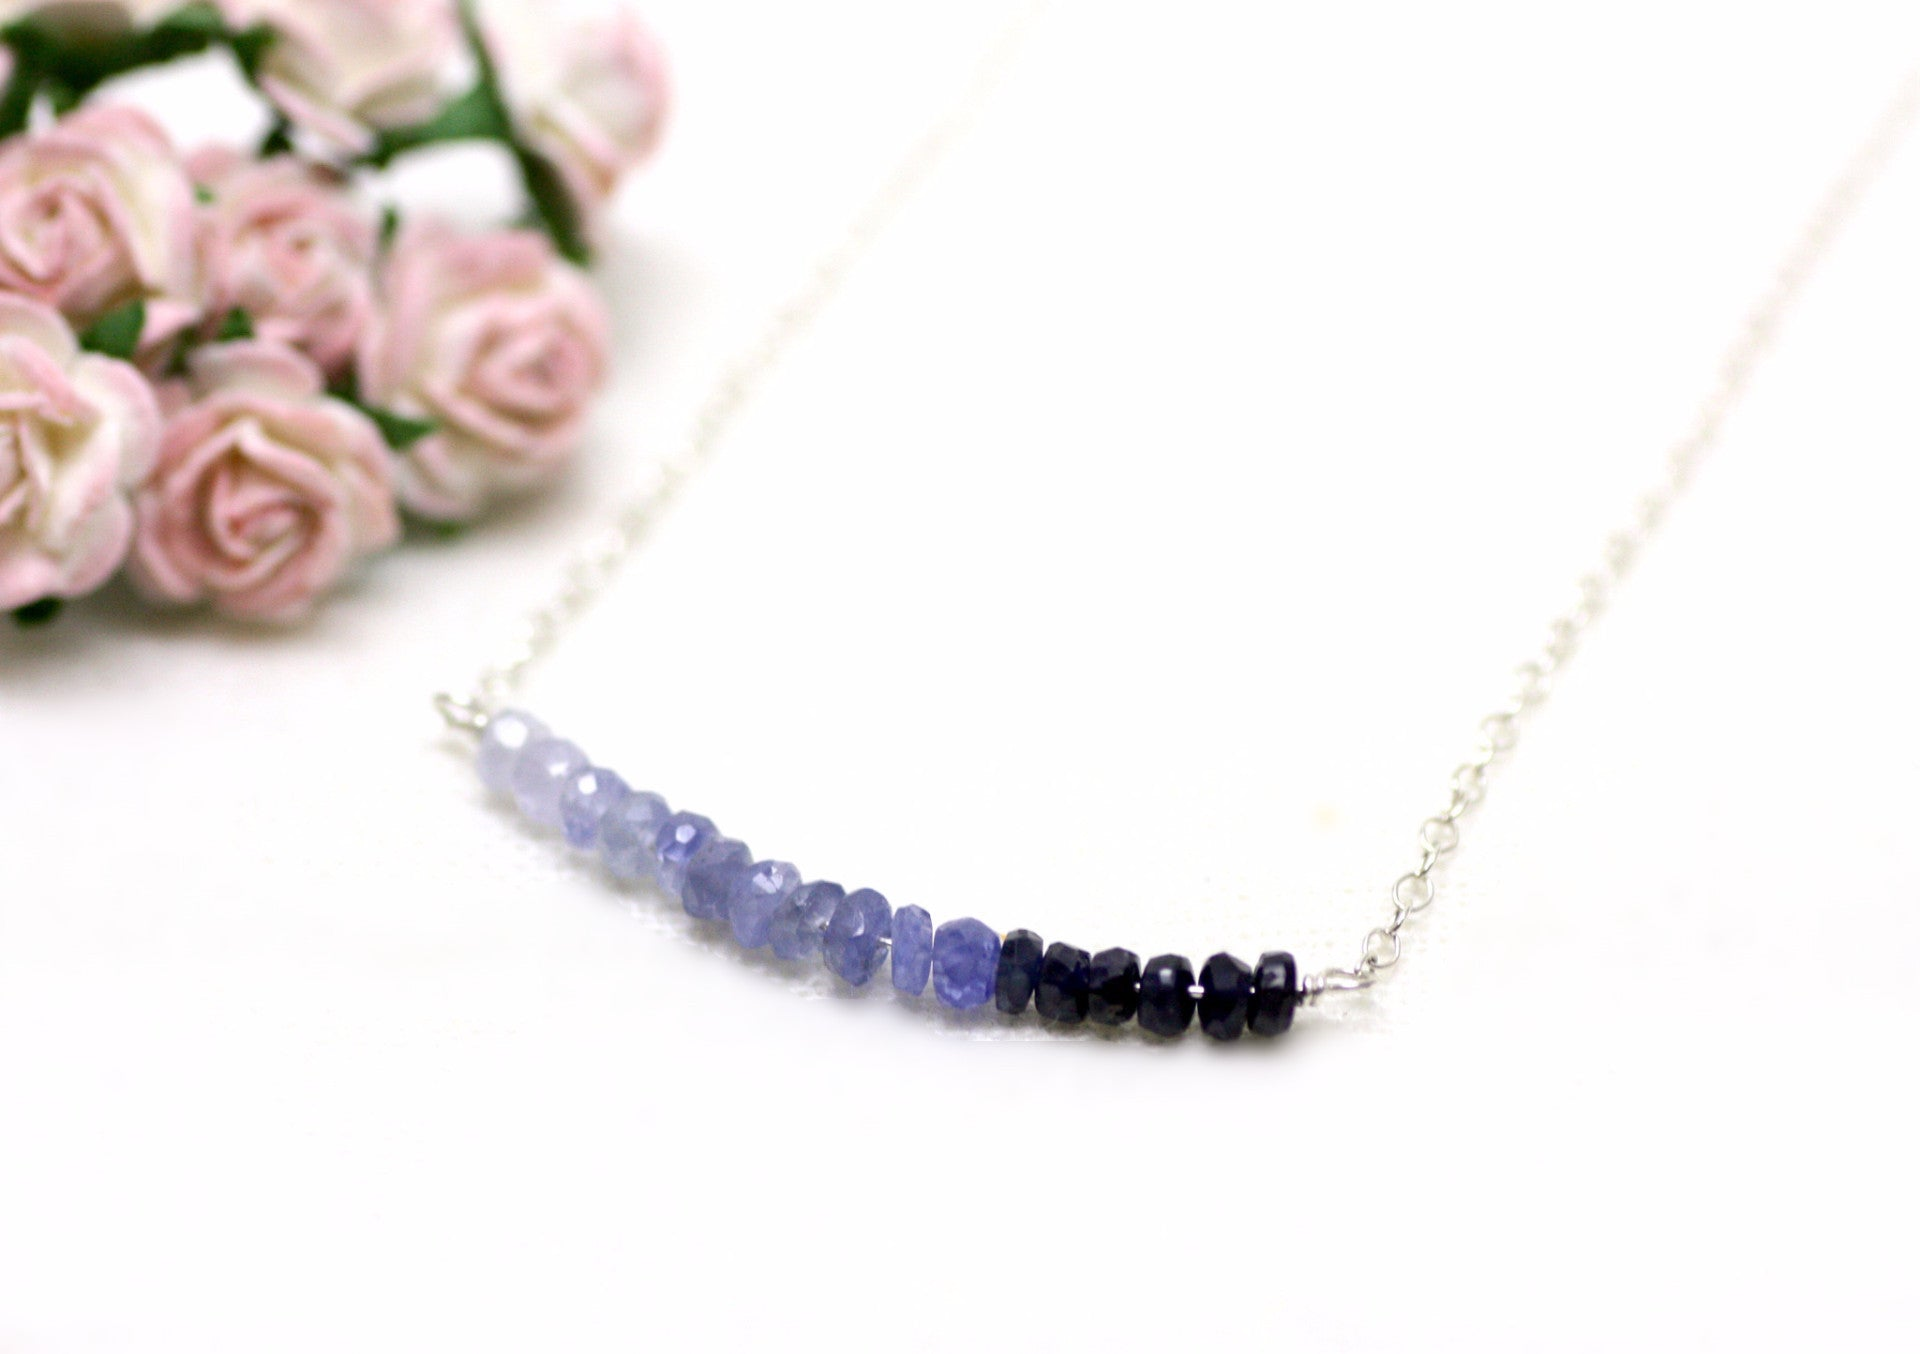 P'tite Jolie Gemstone Bar Necklaces in Sterling Silver